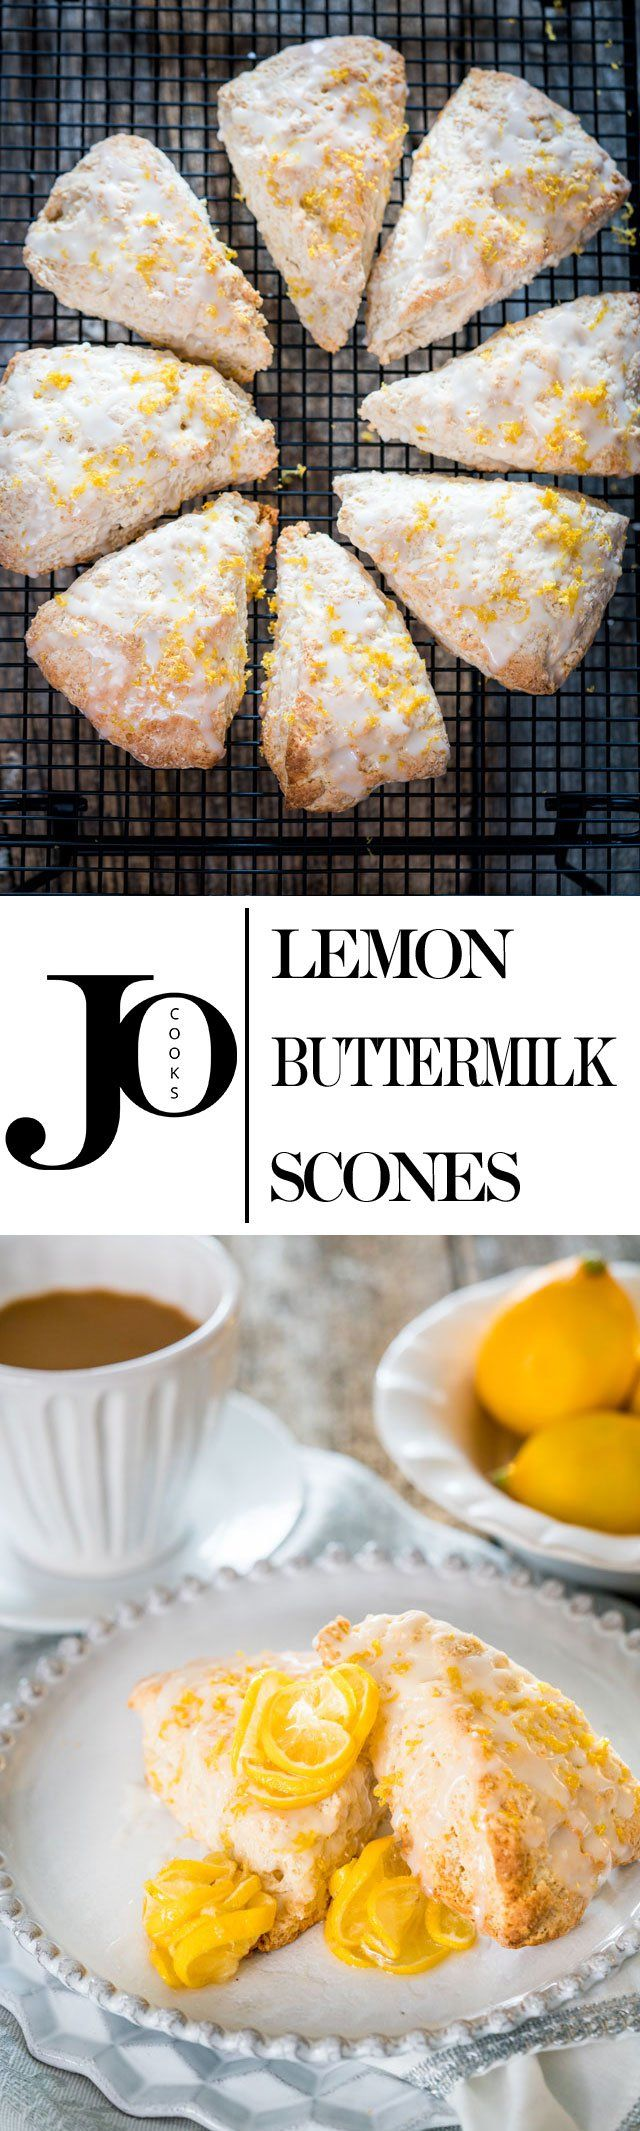 These lemon buttermilk scones are light and fluffy are bursting with lemon flavor, then drizzled with the most incredible tangy lemon glaze.